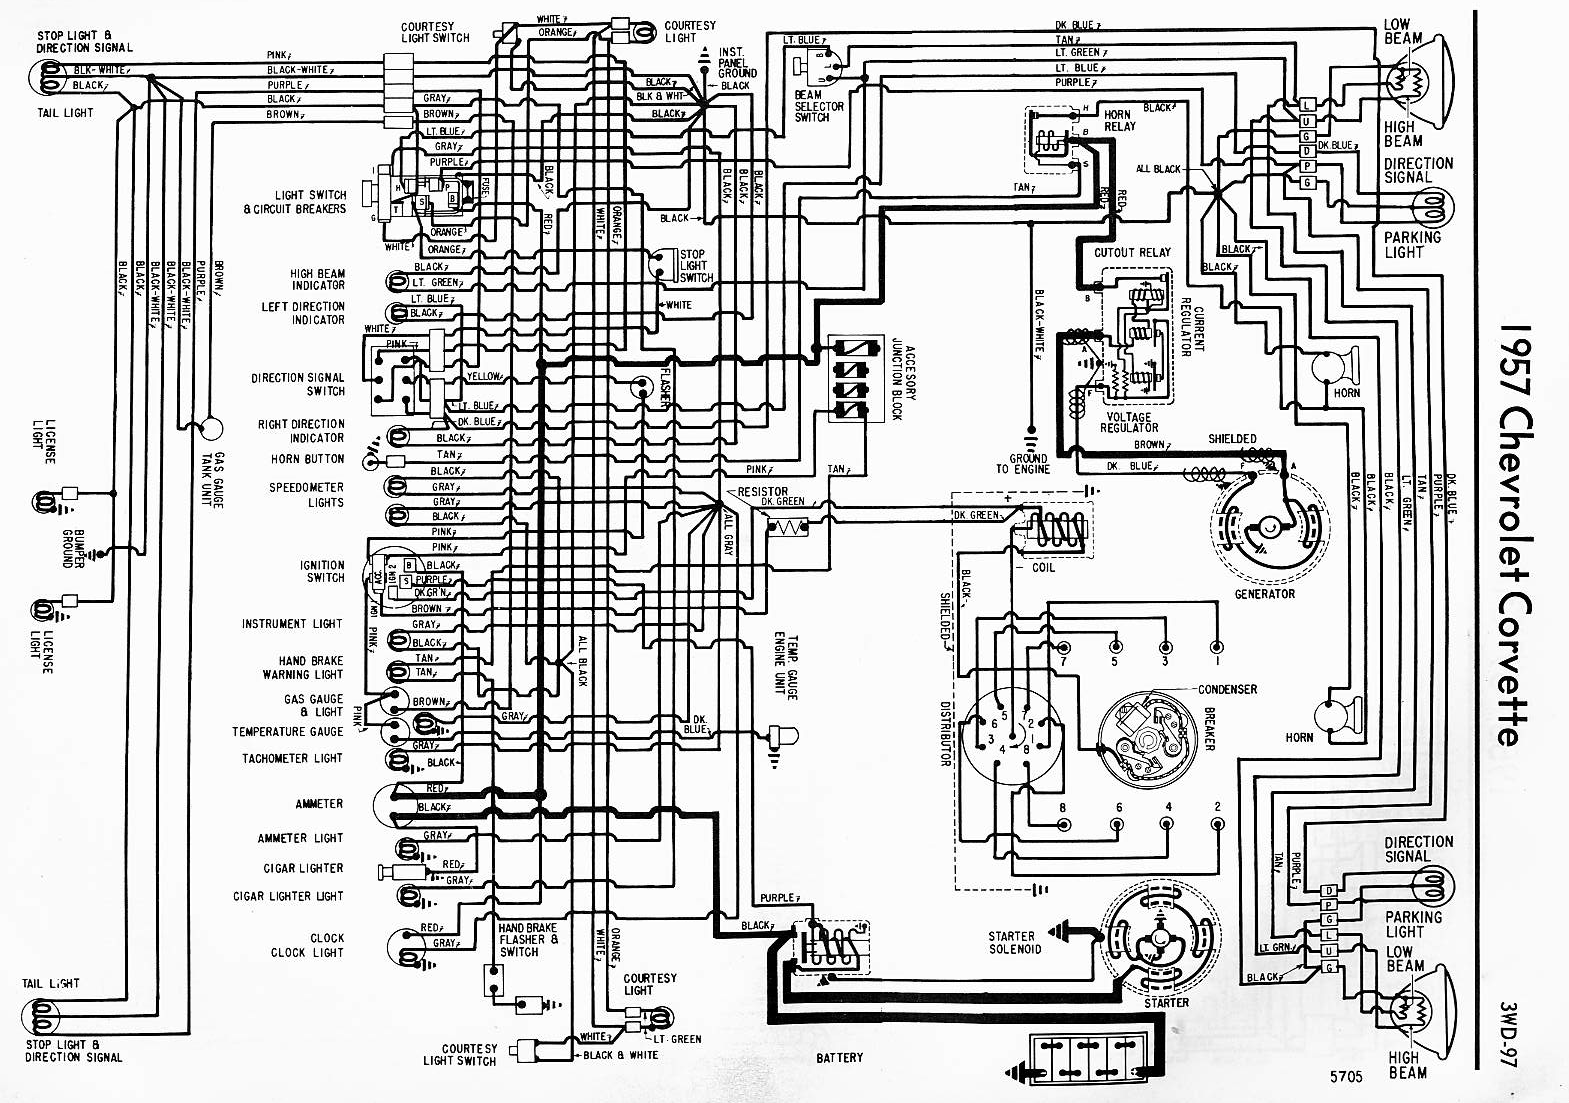 57 corvettte tracer schematic best one 1957 corvette wiring diagram willcox corvette, inc 1971 corvette wiring diagram at edmiracle.co